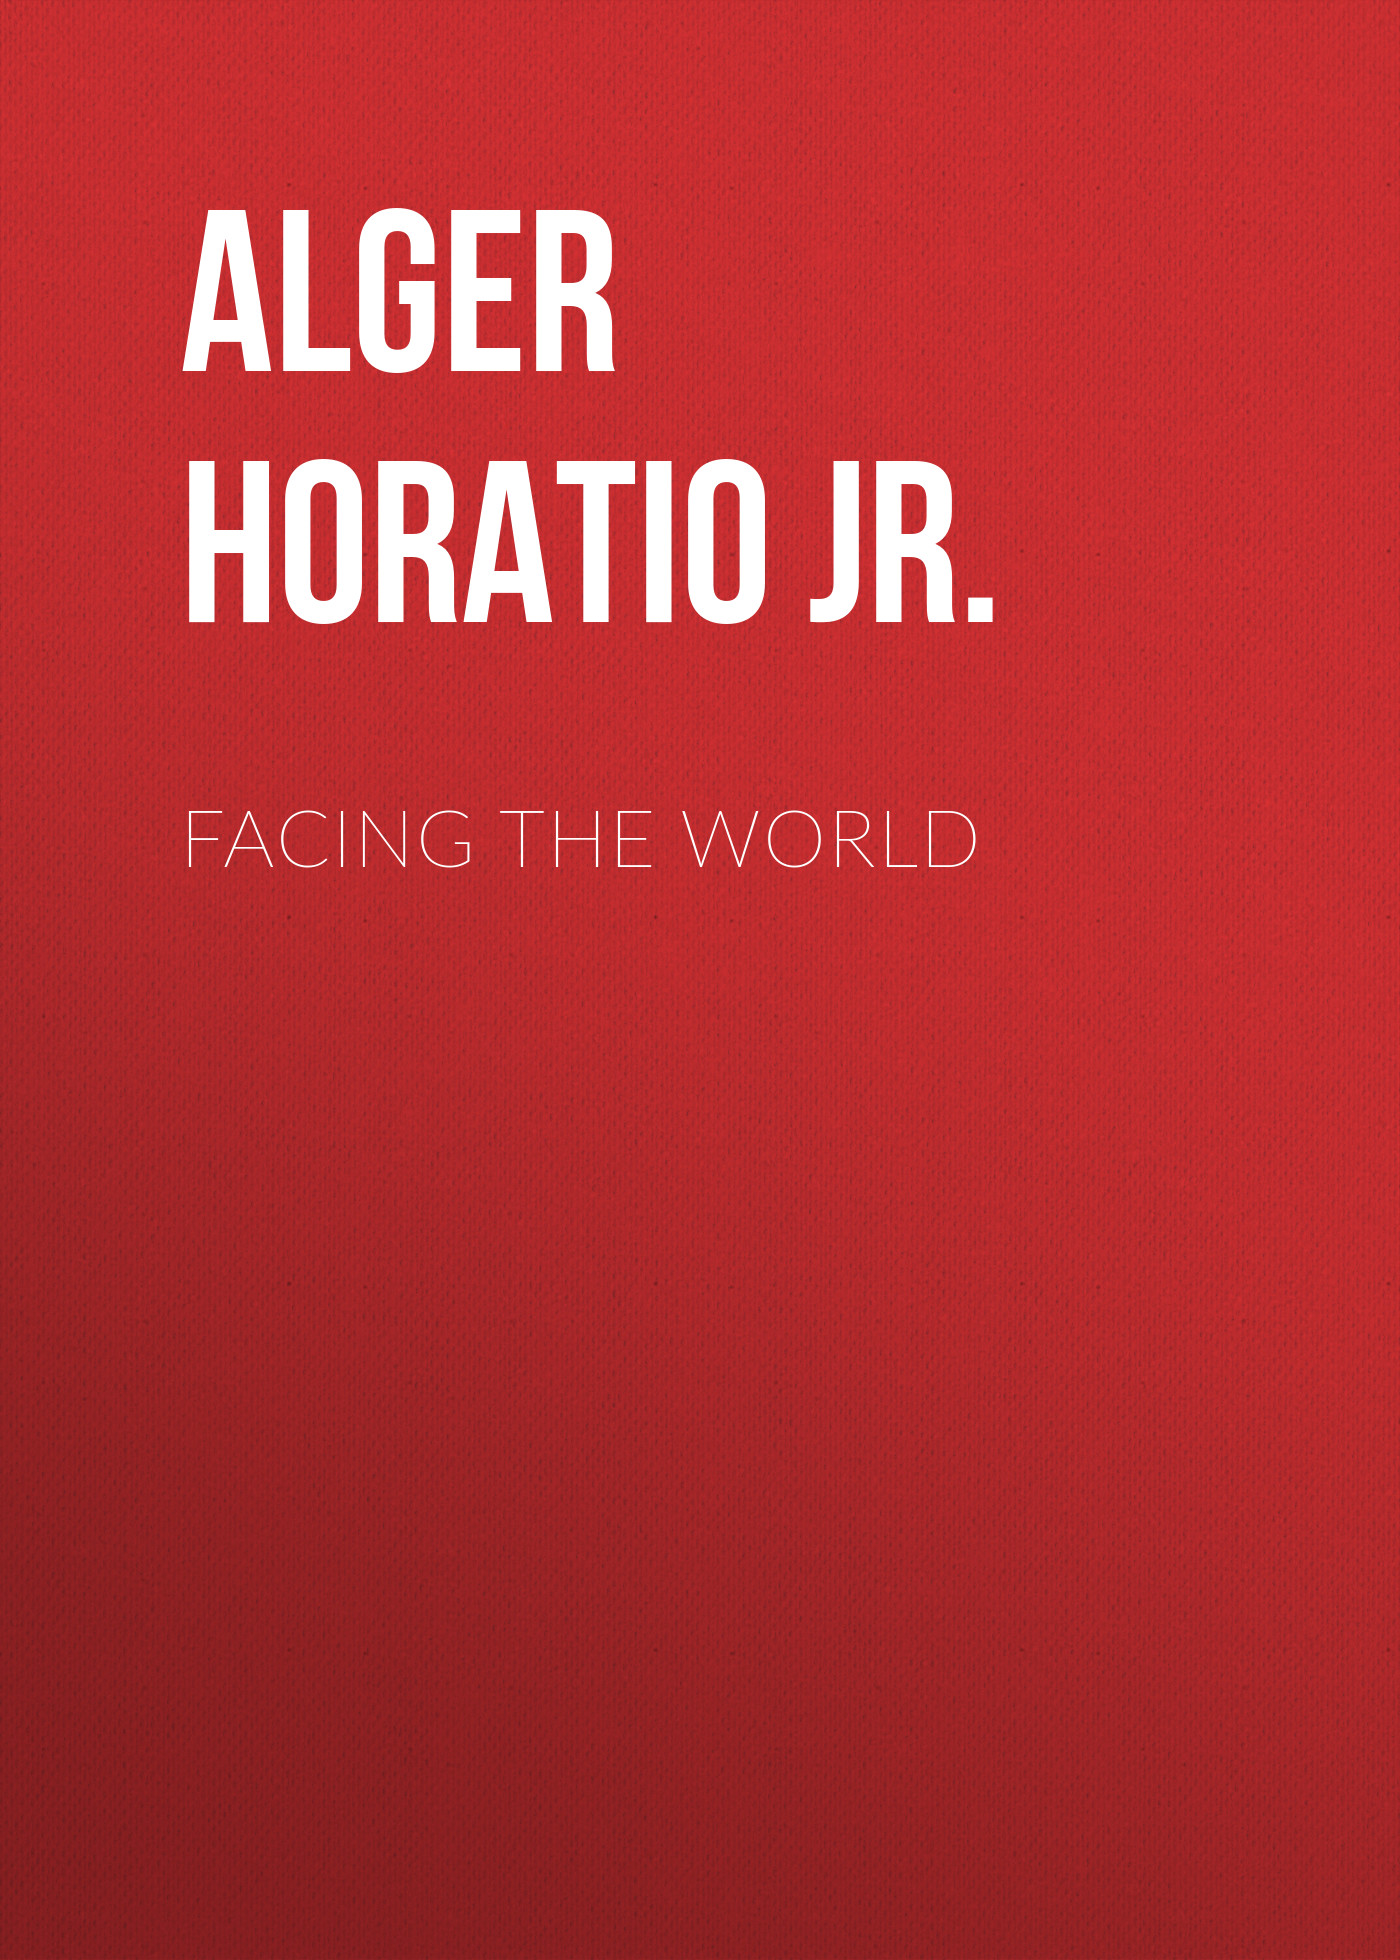 лучшая цена Alger Horatio Jr. Facing the World